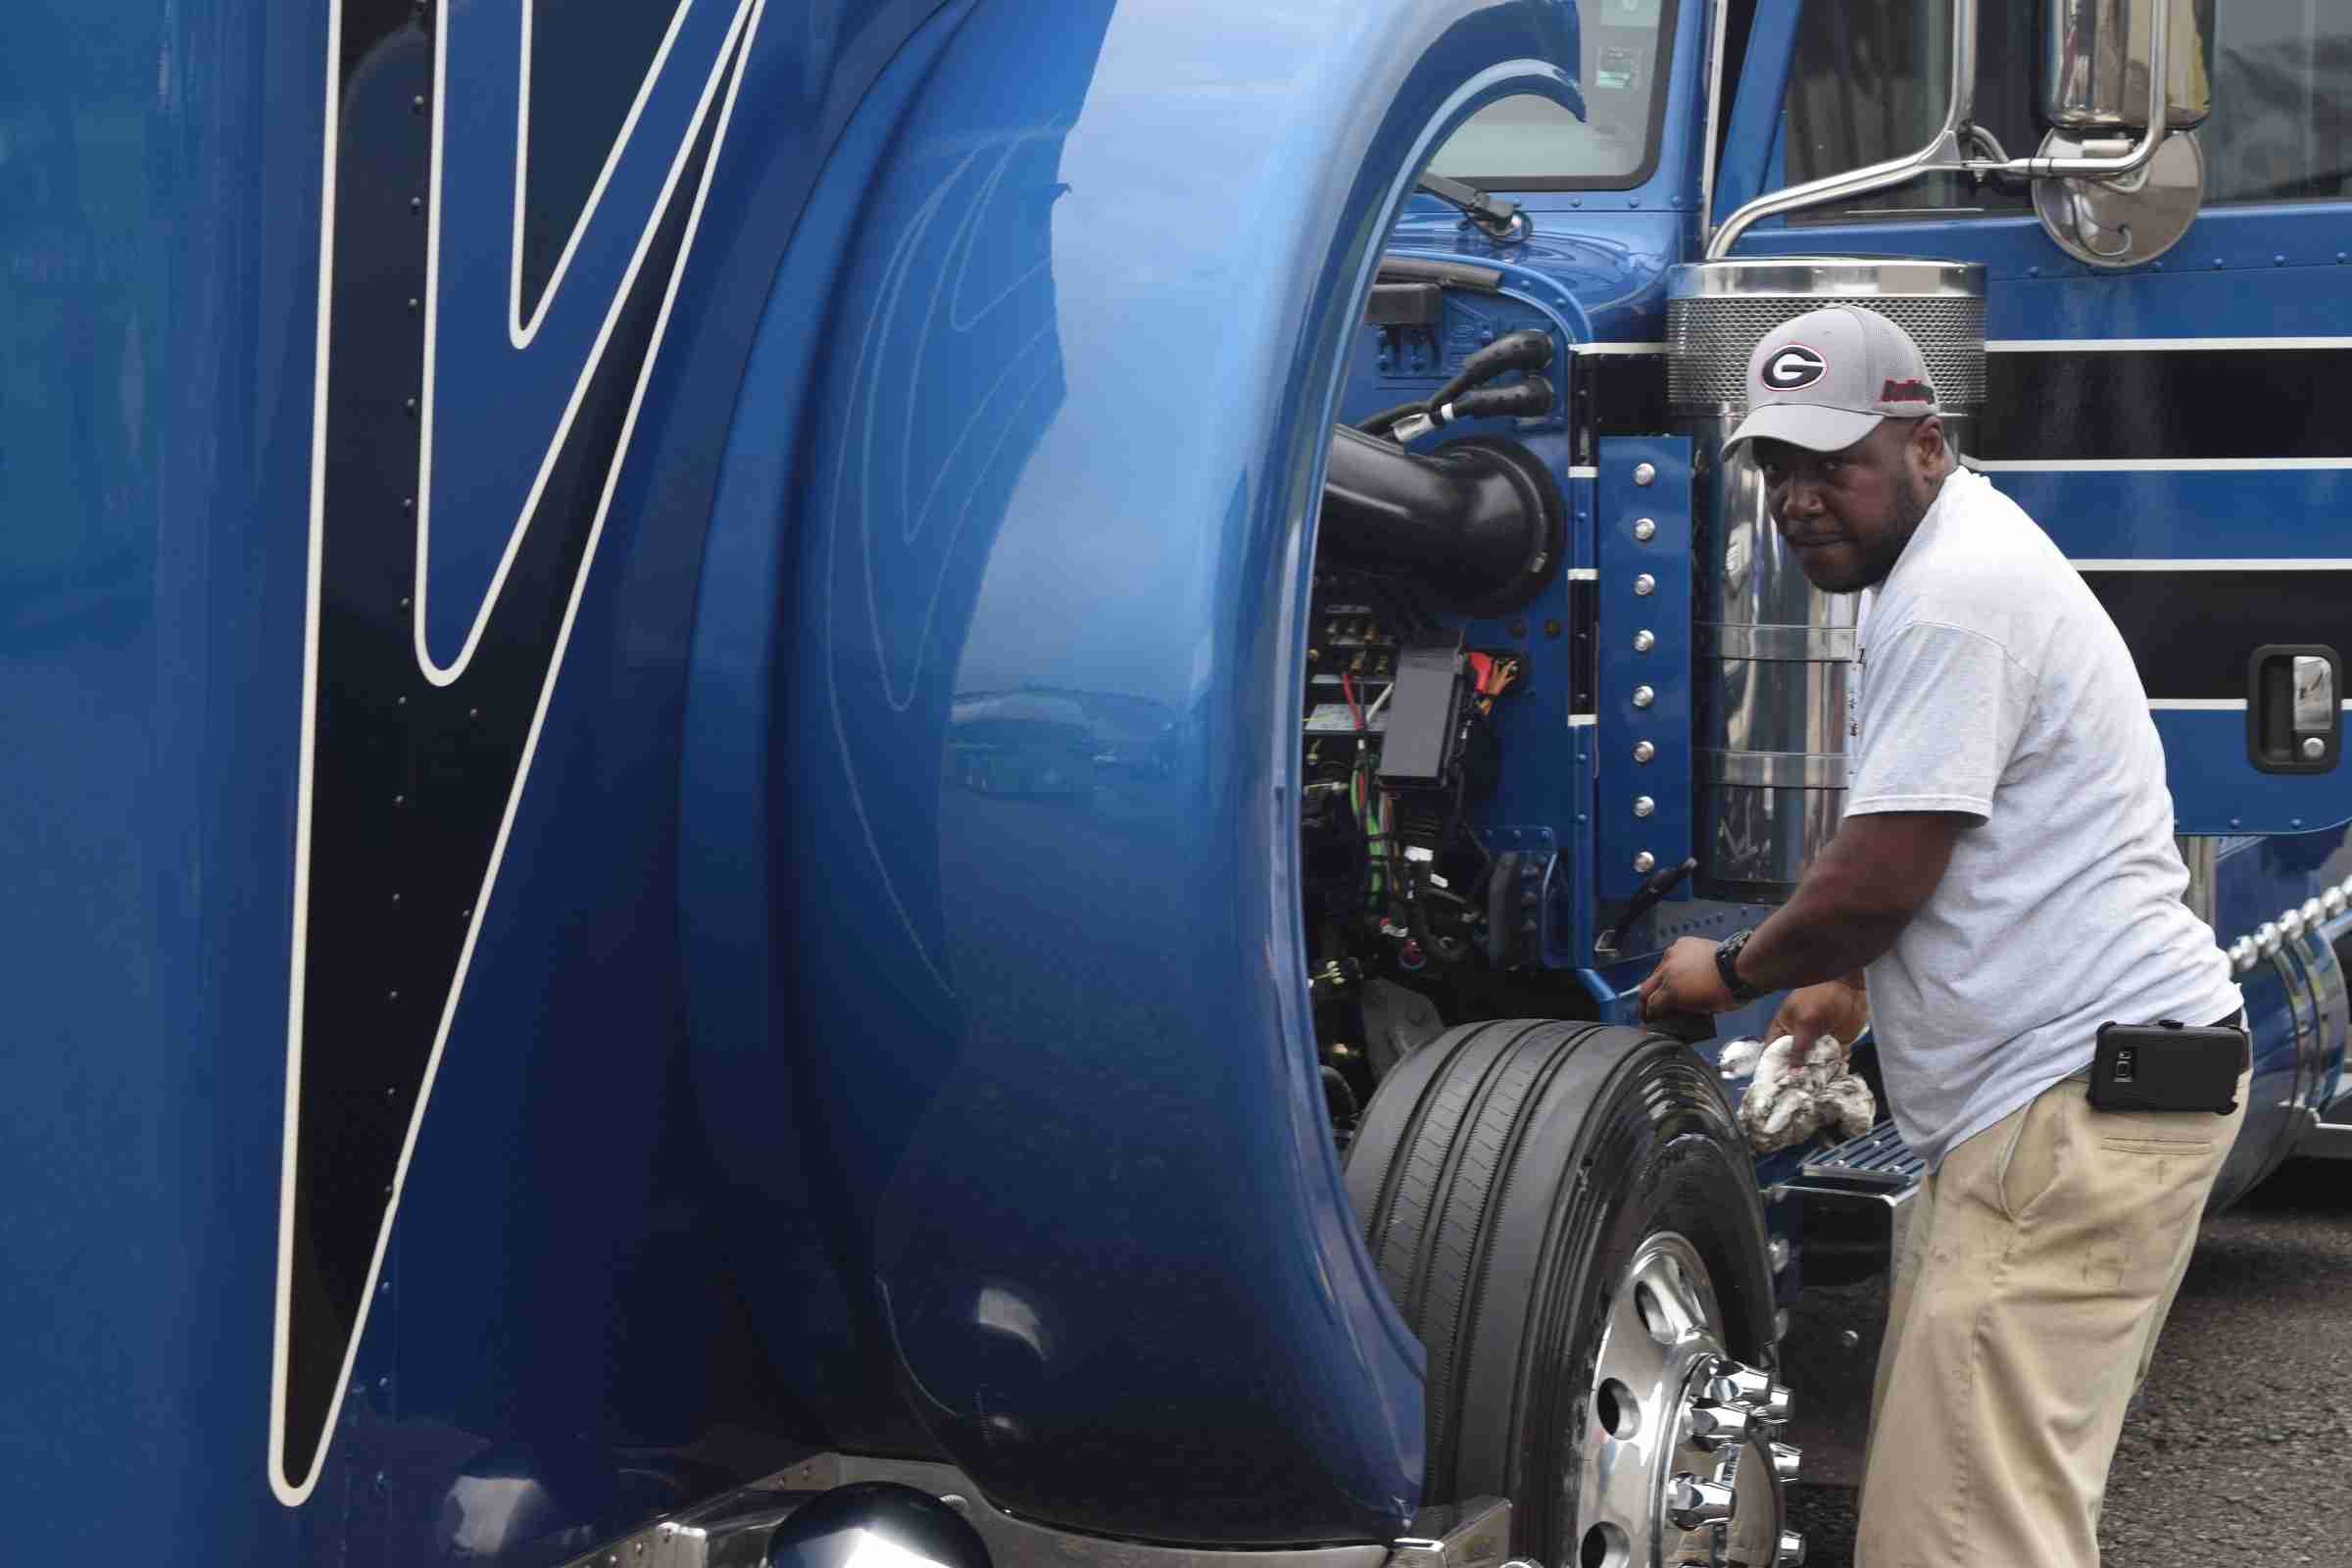 Warren Wiseman, driver for Eric Turner's Atlanta-based Turner Transport small fleet, putting the finishing touches on Turner's 2015 Peterbilt glider, showing with an open car haul trailer.